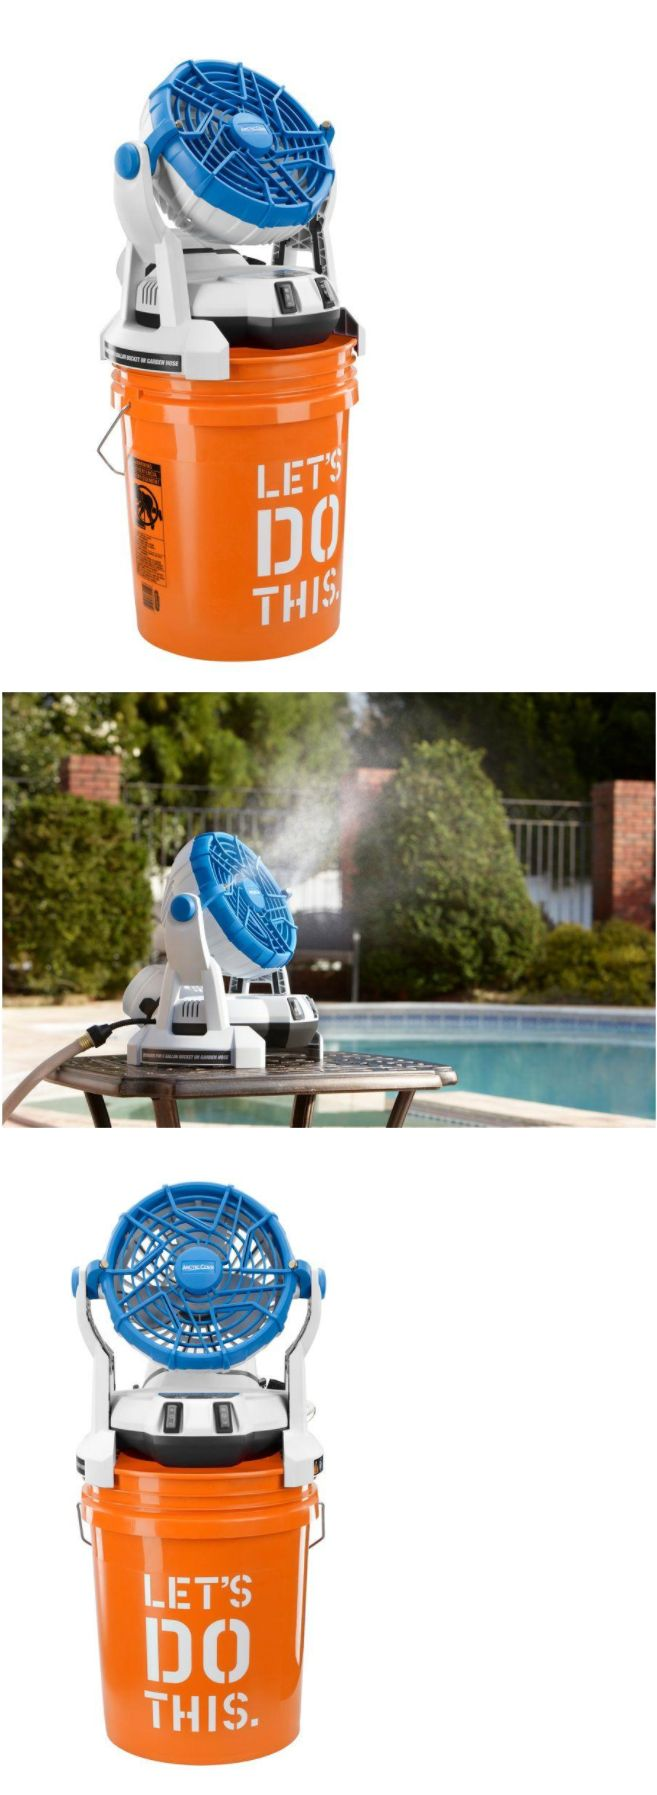 Portable Fans 20612: 18 Volt Two Speed Misting Bucket Top Heating Cooling Portable Fan Easy Moving -> BUY IT NOW ONLY: $91.93 on eBay!